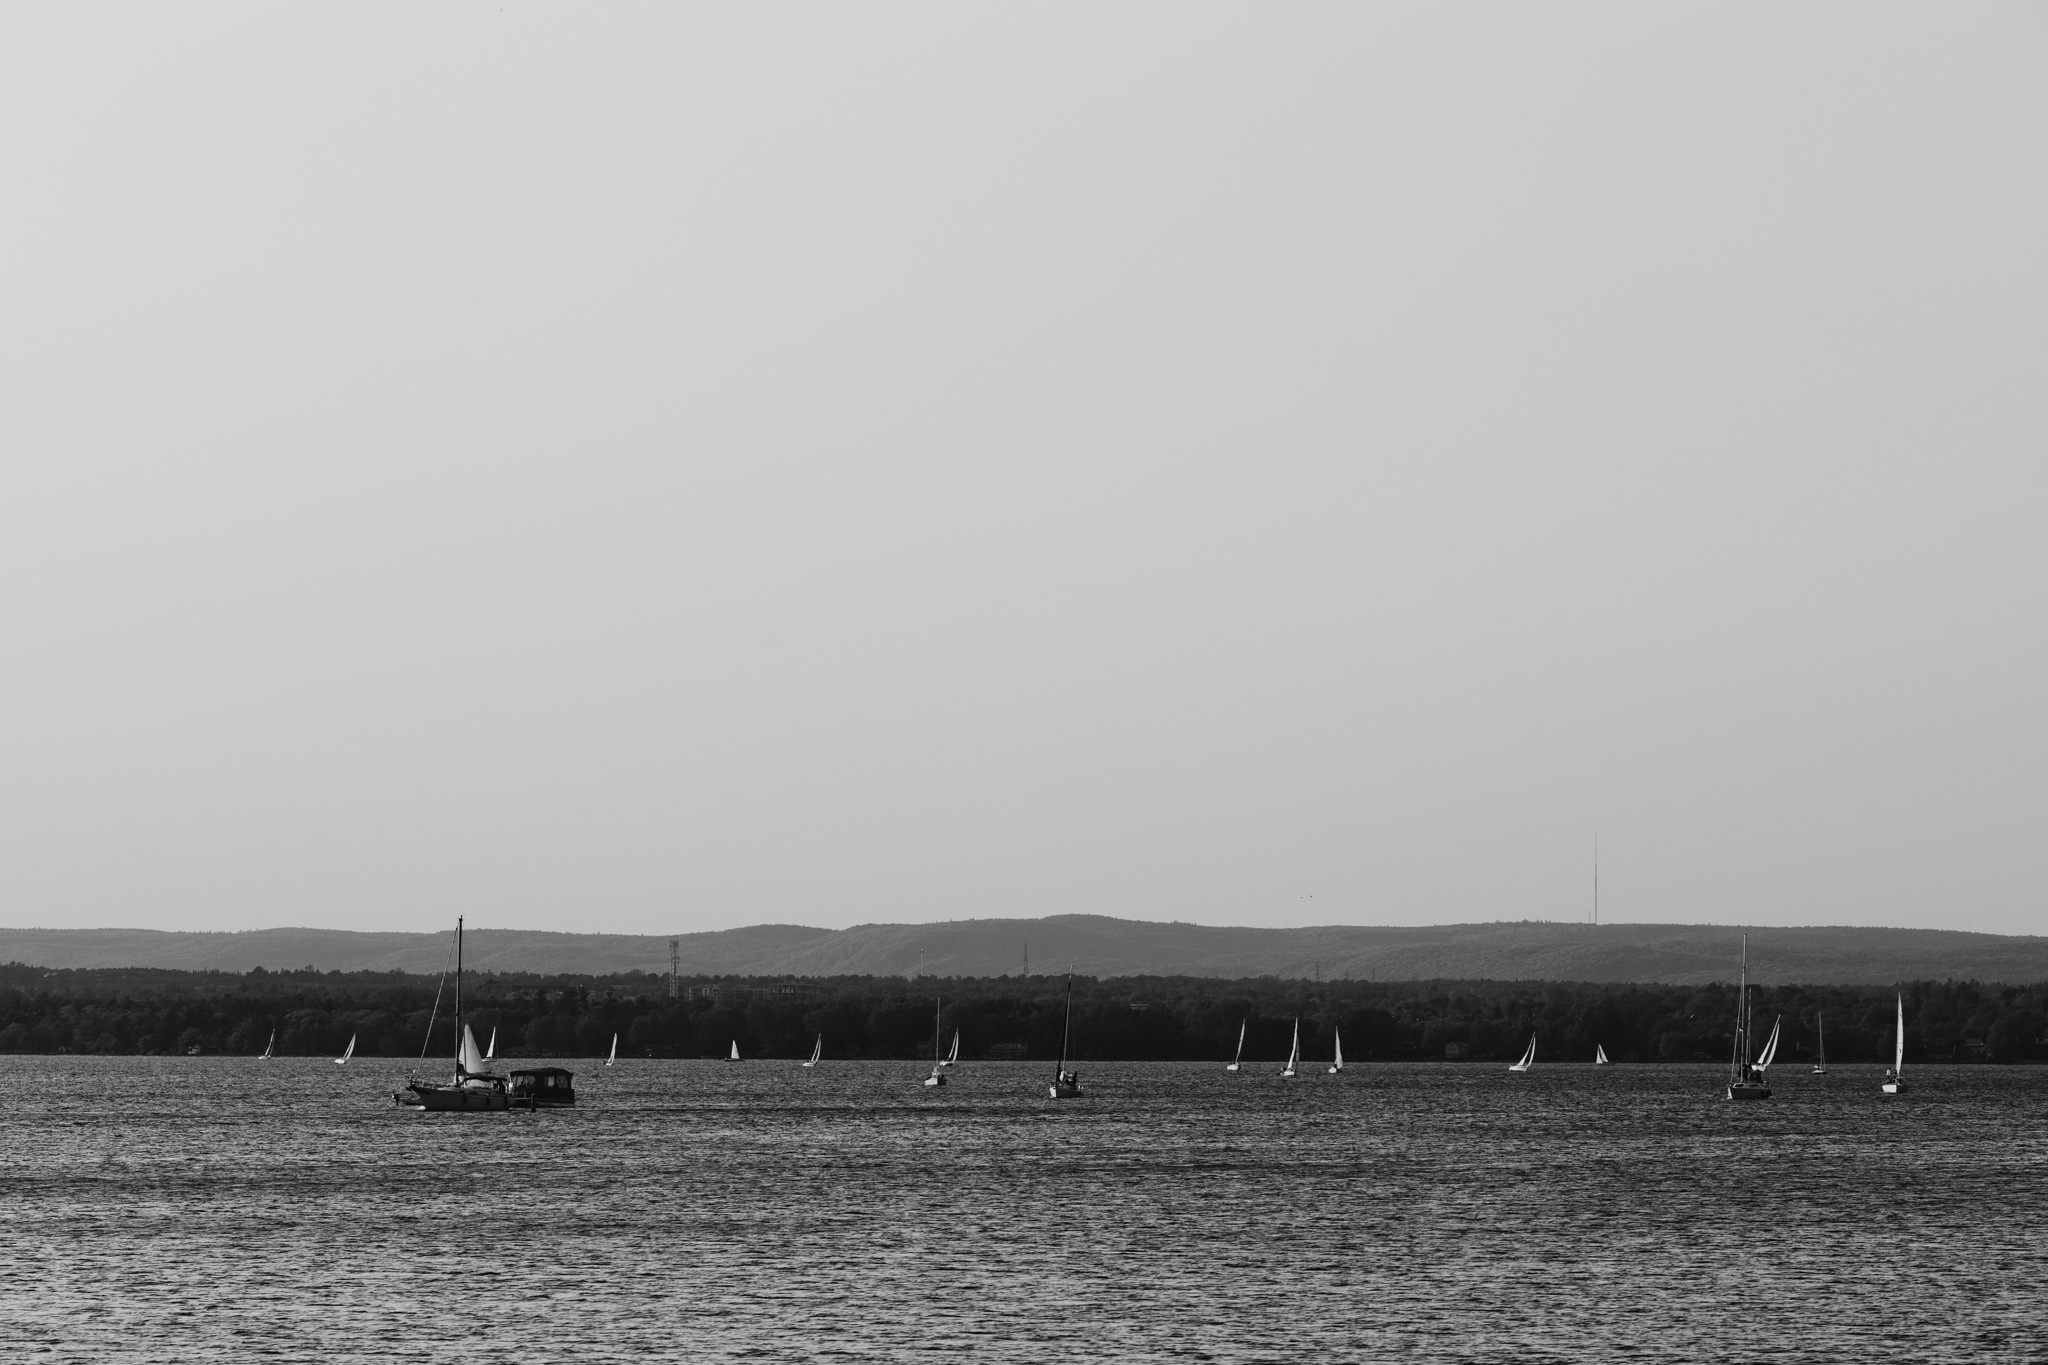 Sailboats over the Ottawa River